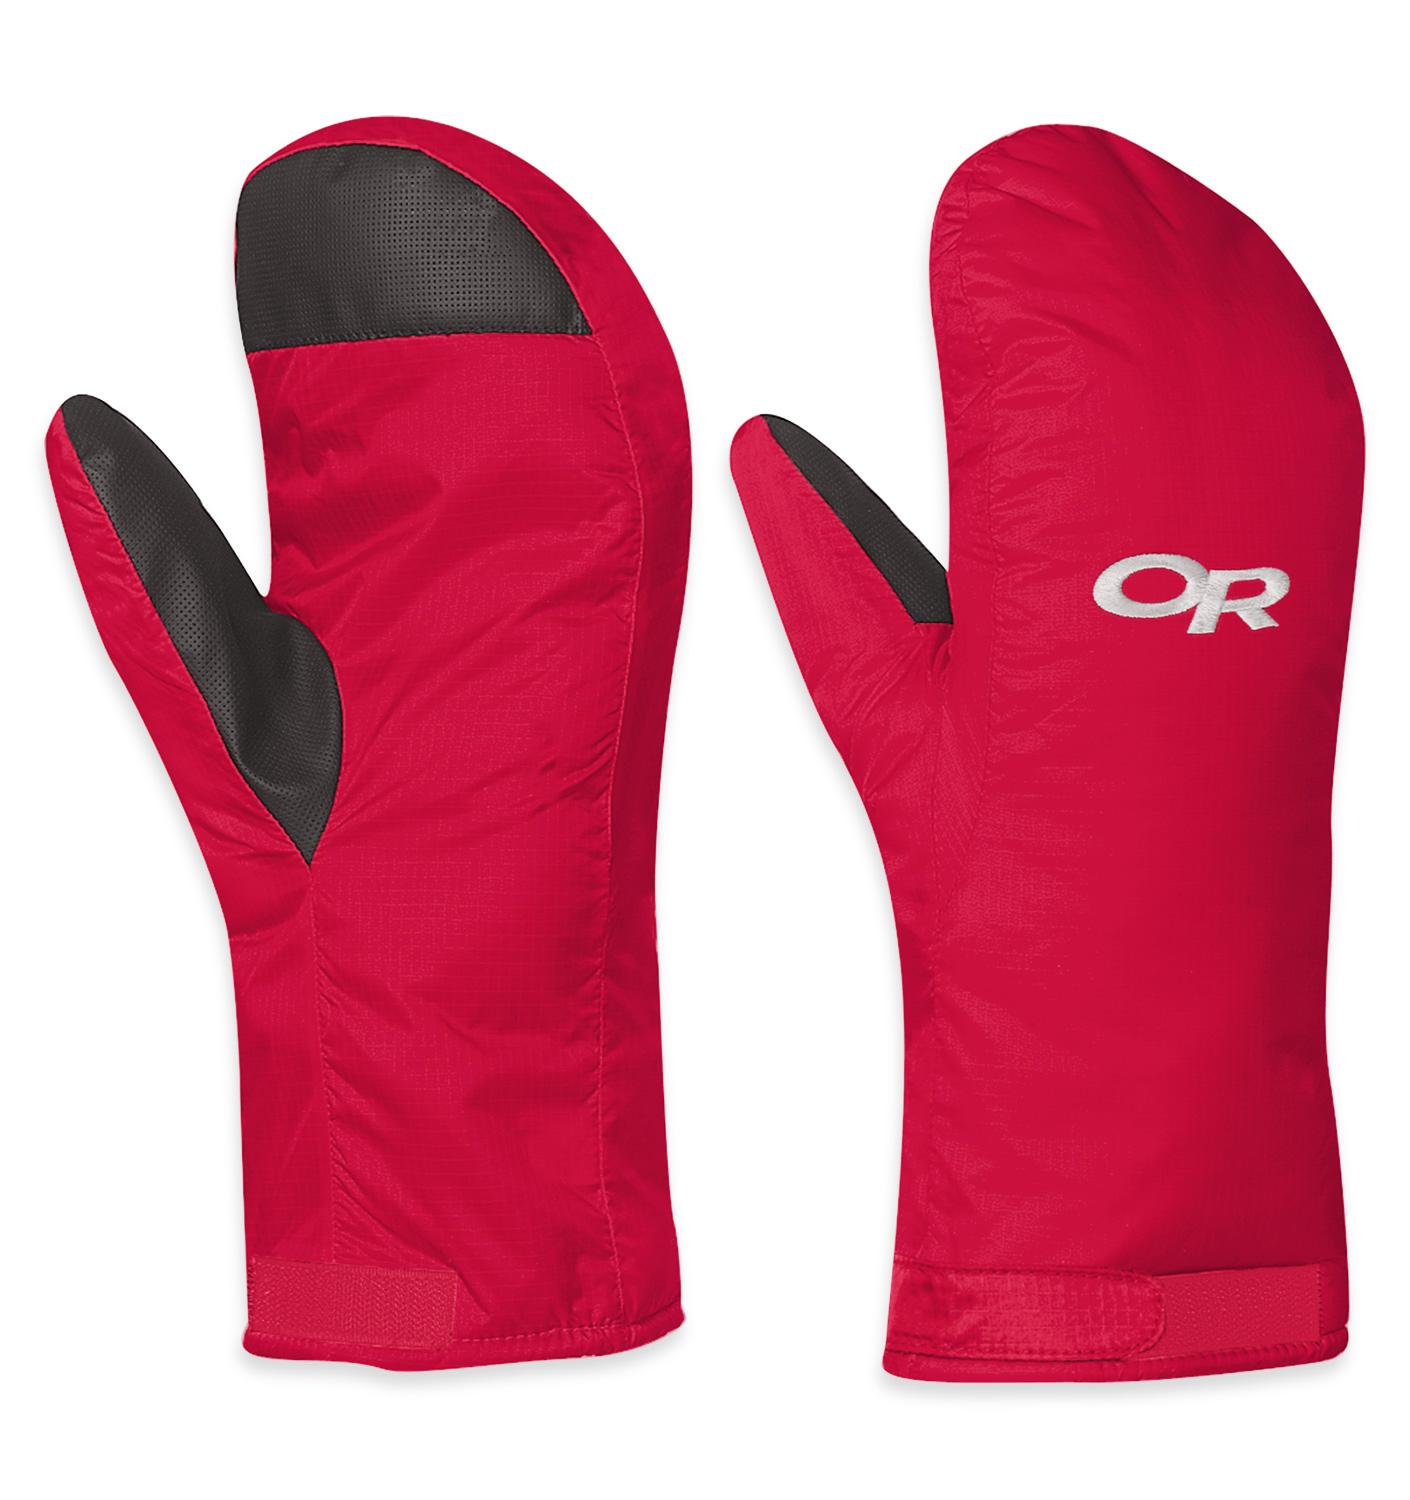 Amazon.com : Outdoor Research Men's Alti Mitts : Skiing